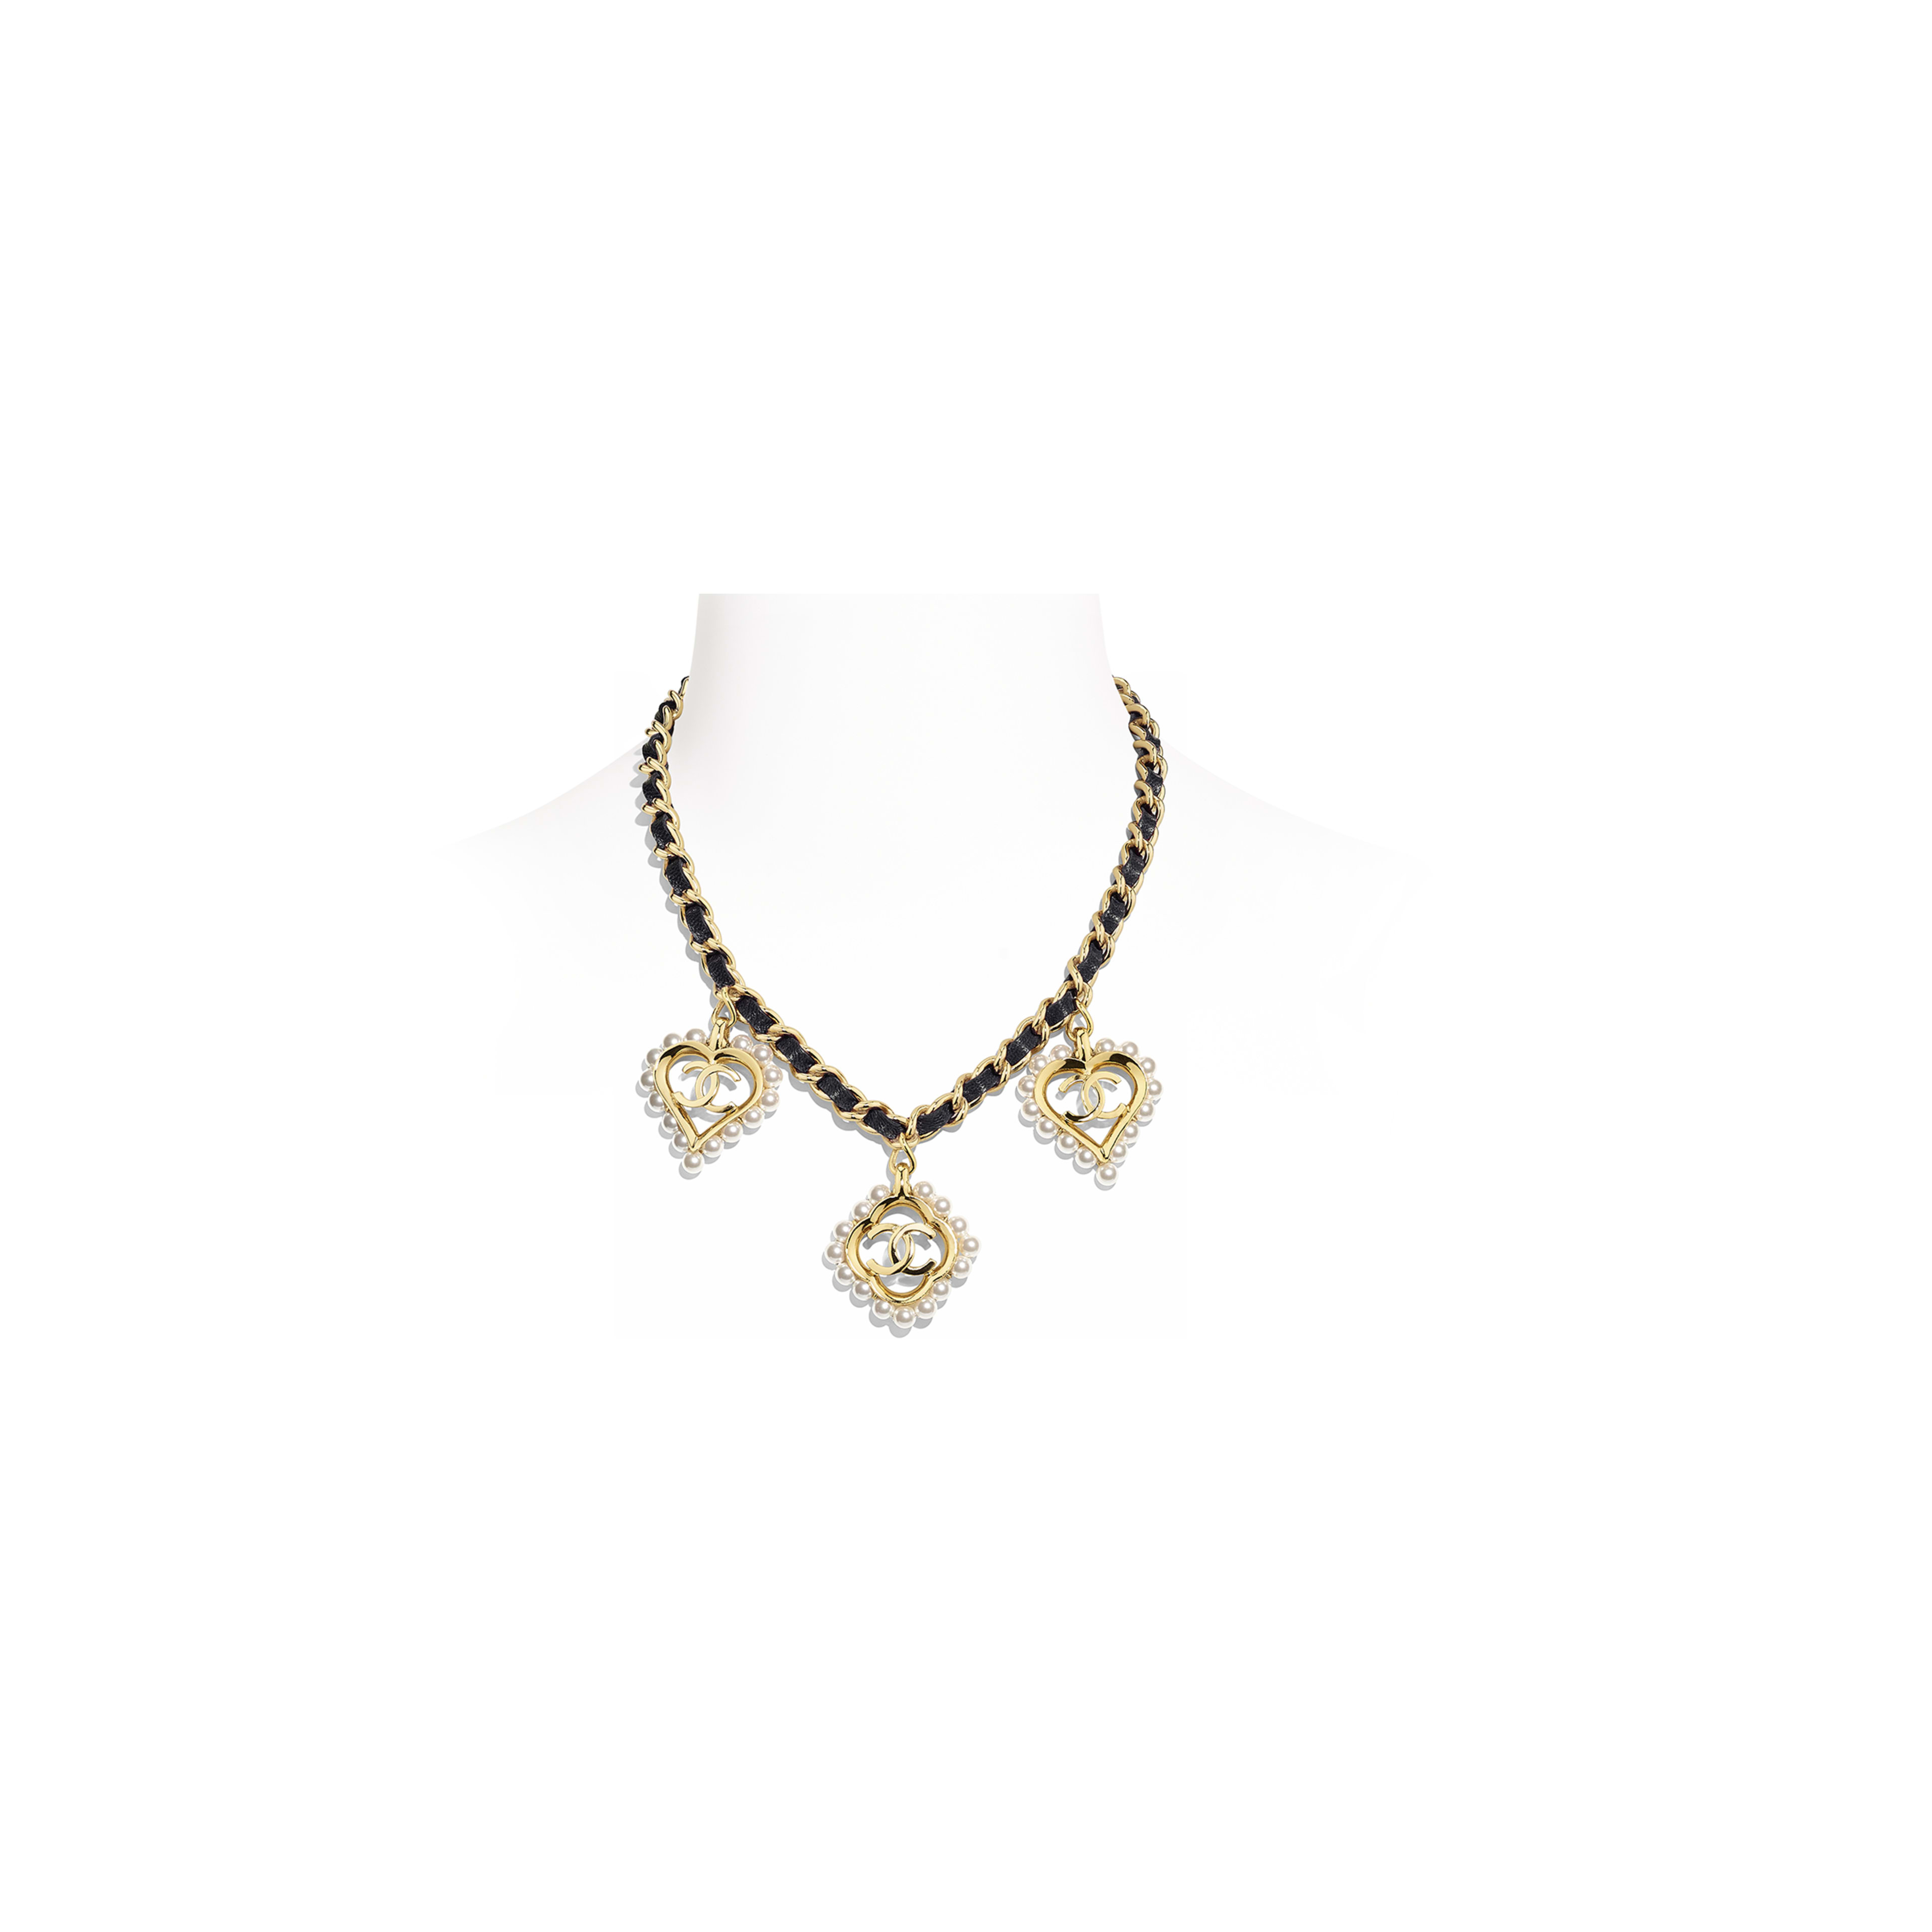 Necklace - Gold, Black & Pearly White - Metal, Calfskin & Glass Pearls - Default view - see full sized version